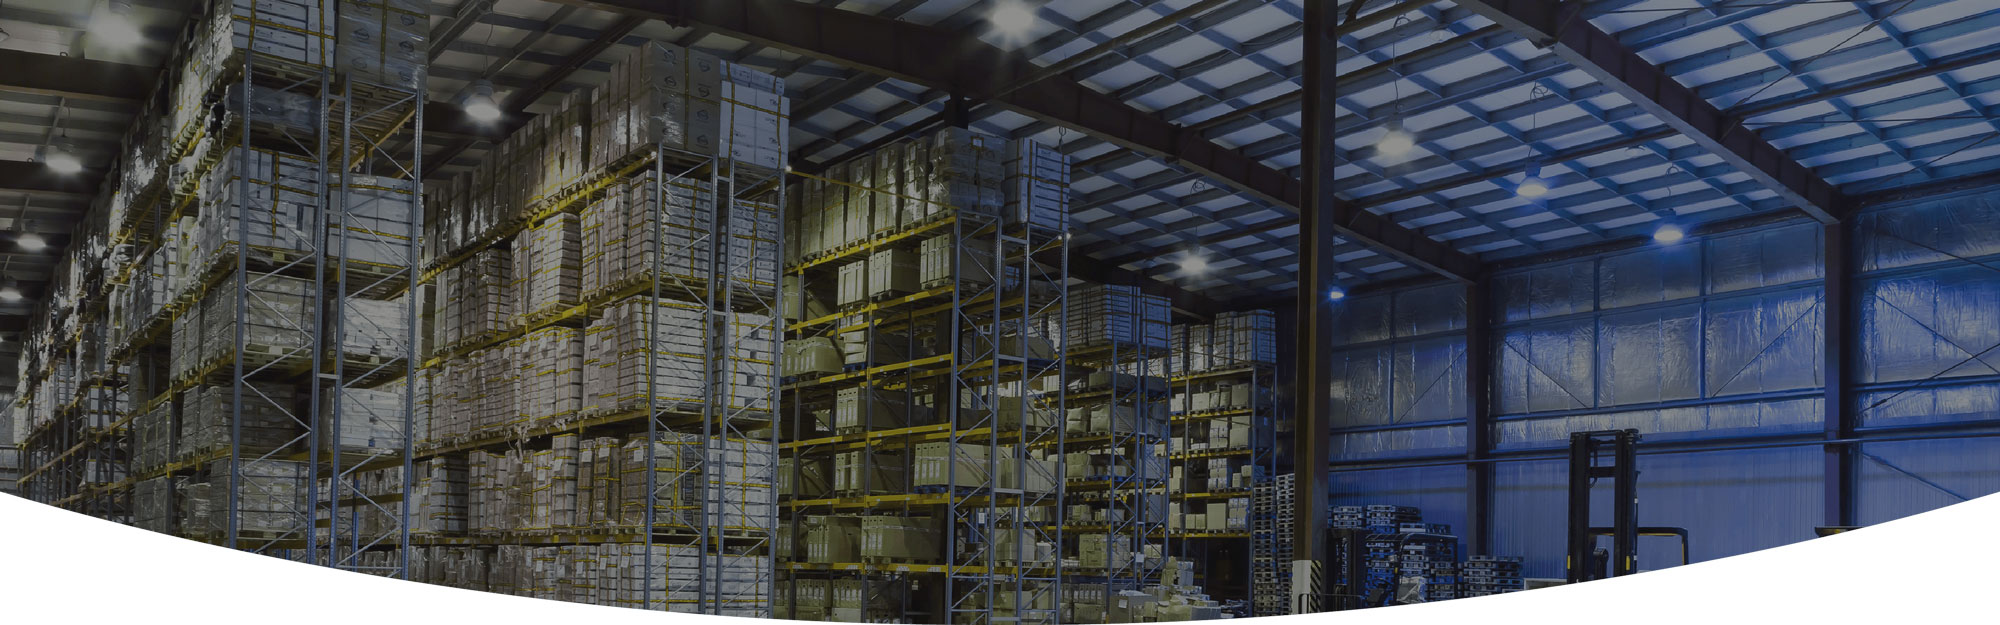 Commercial warehouse on Wrexham industrial estate